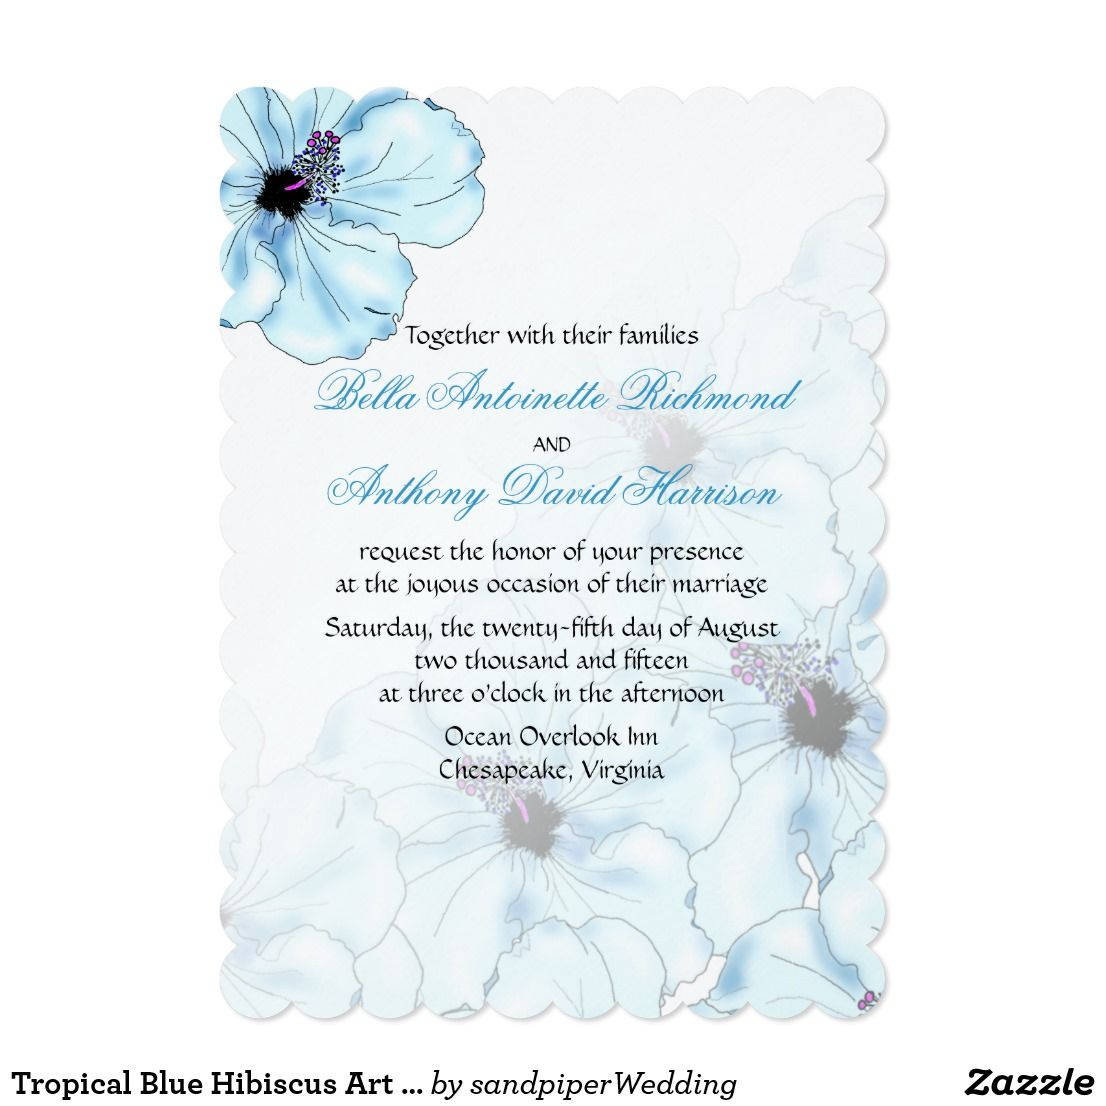 Tropical blue hibiscus art wedding invitation floral designs and